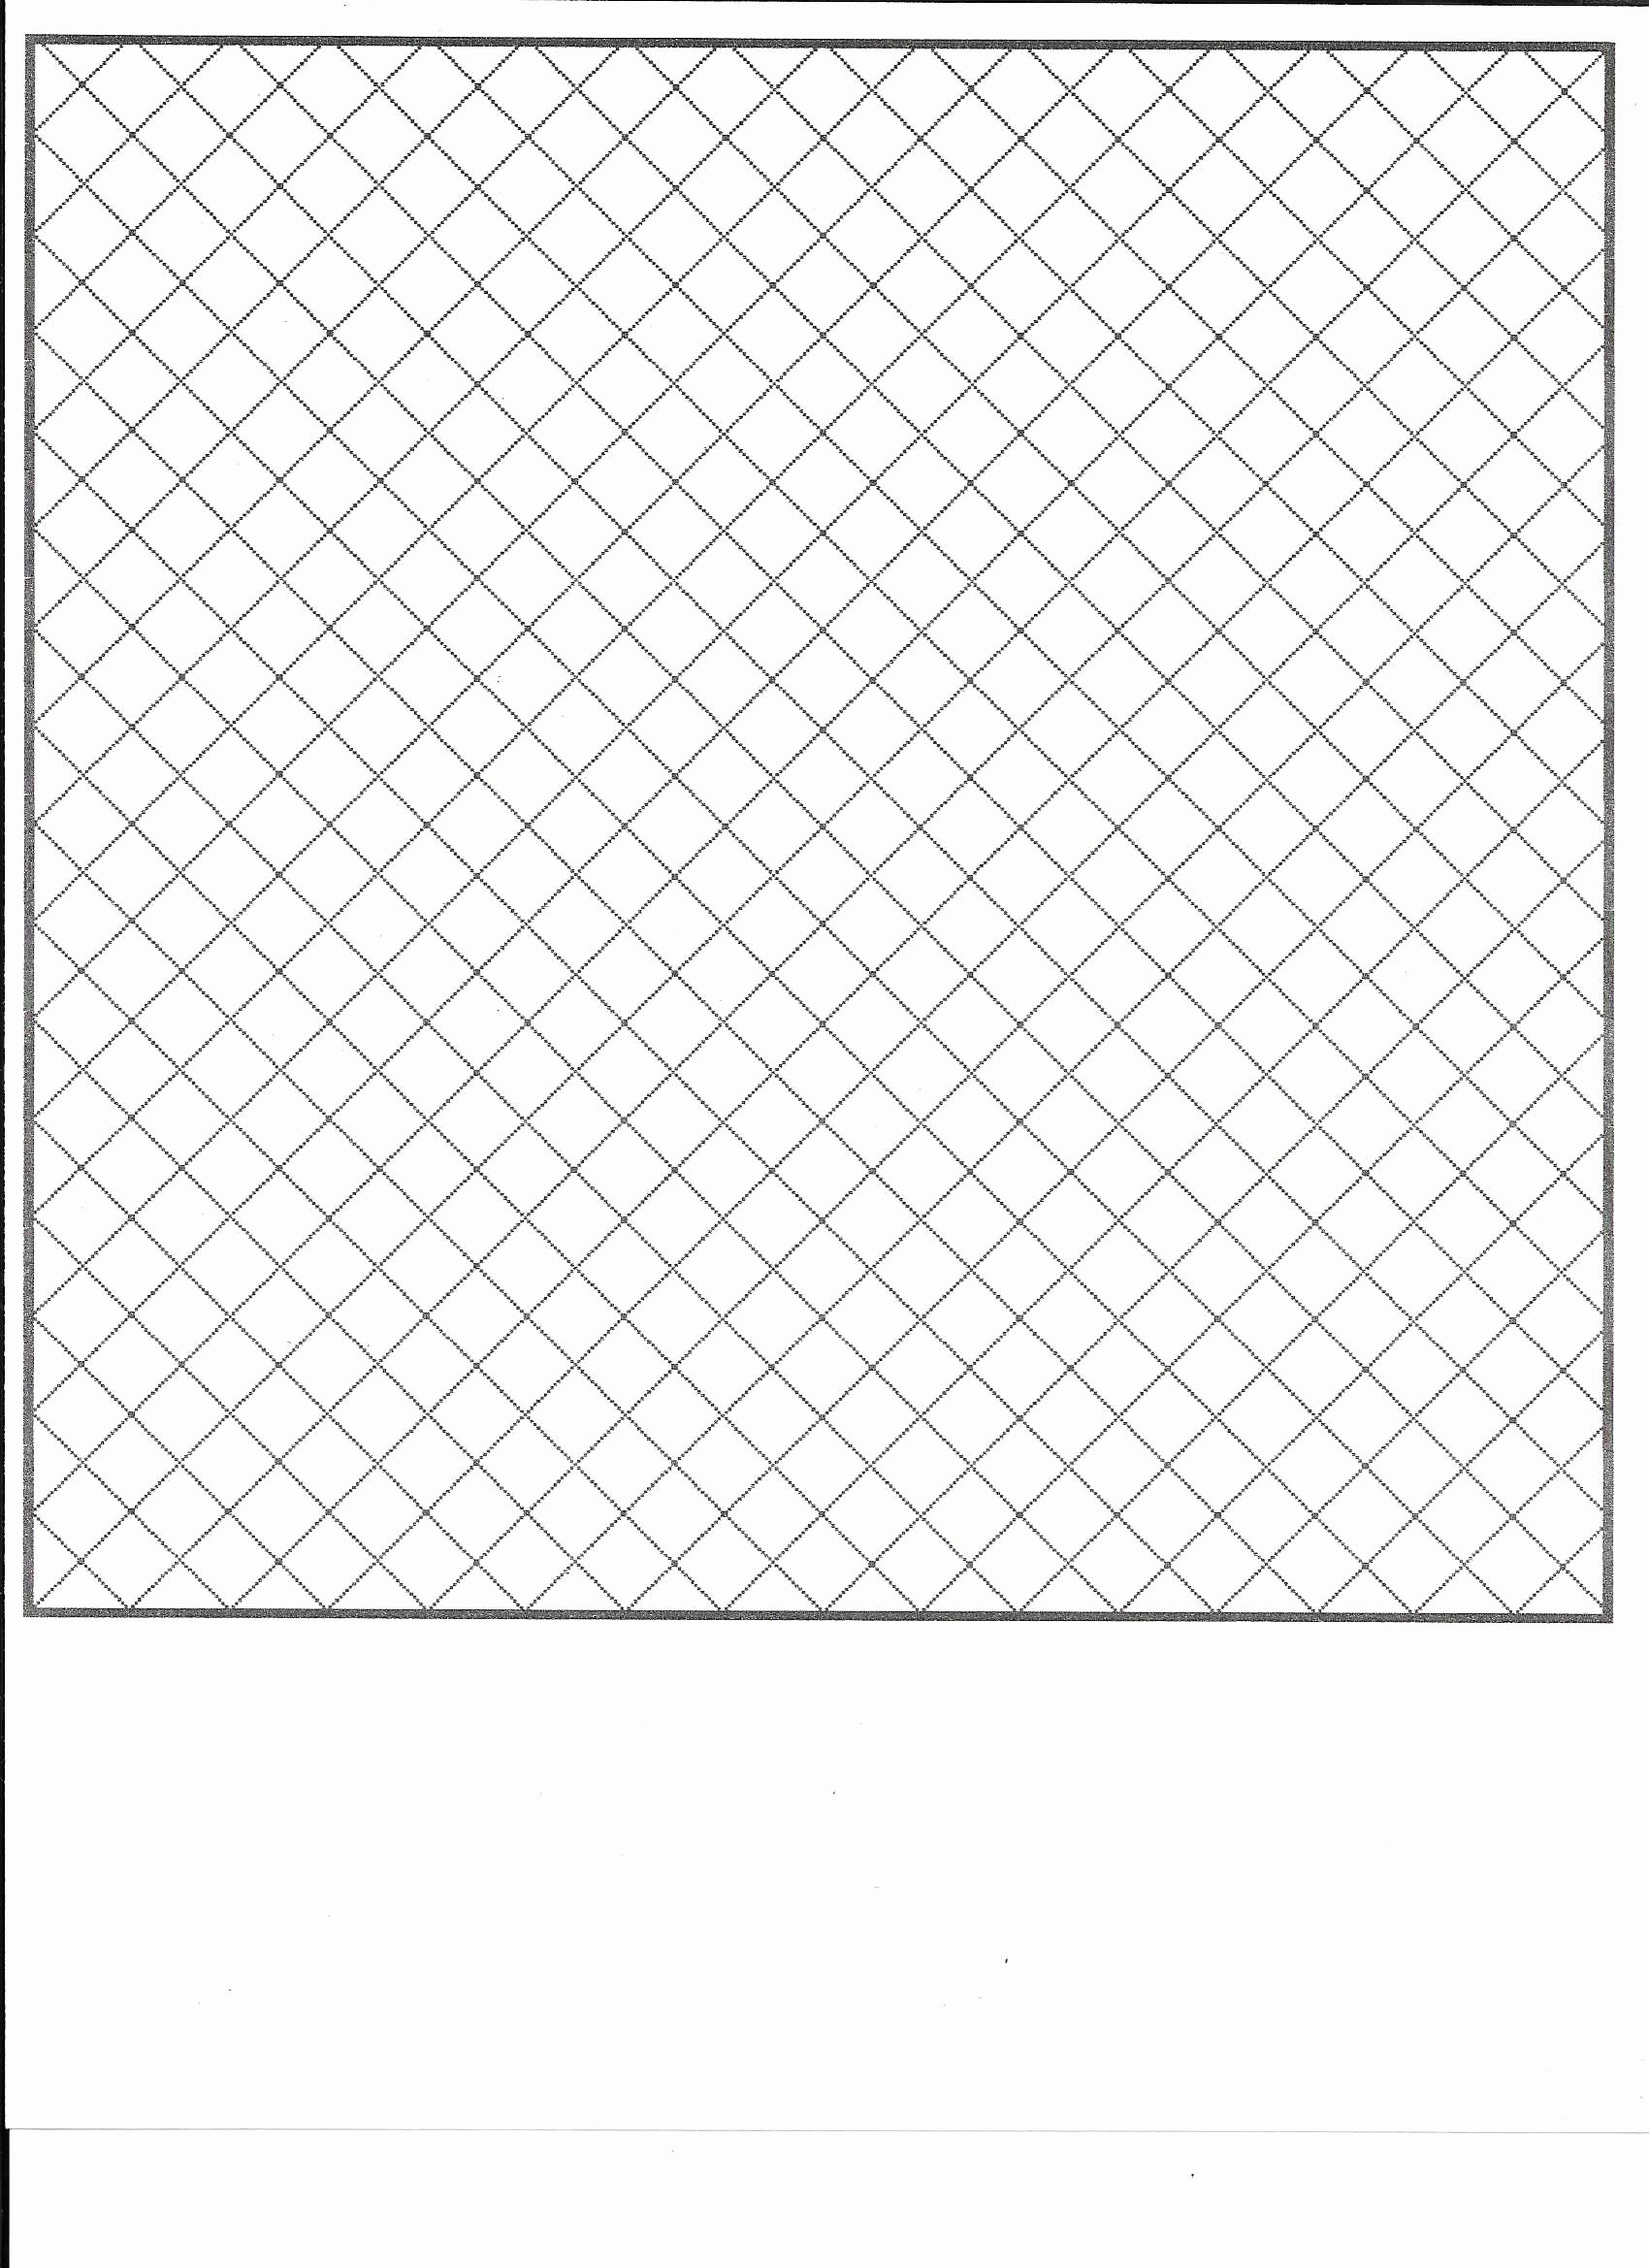 Big Square Graph Paper Luxury Diagonal Squares On Point Graph Paper if You Like to Map